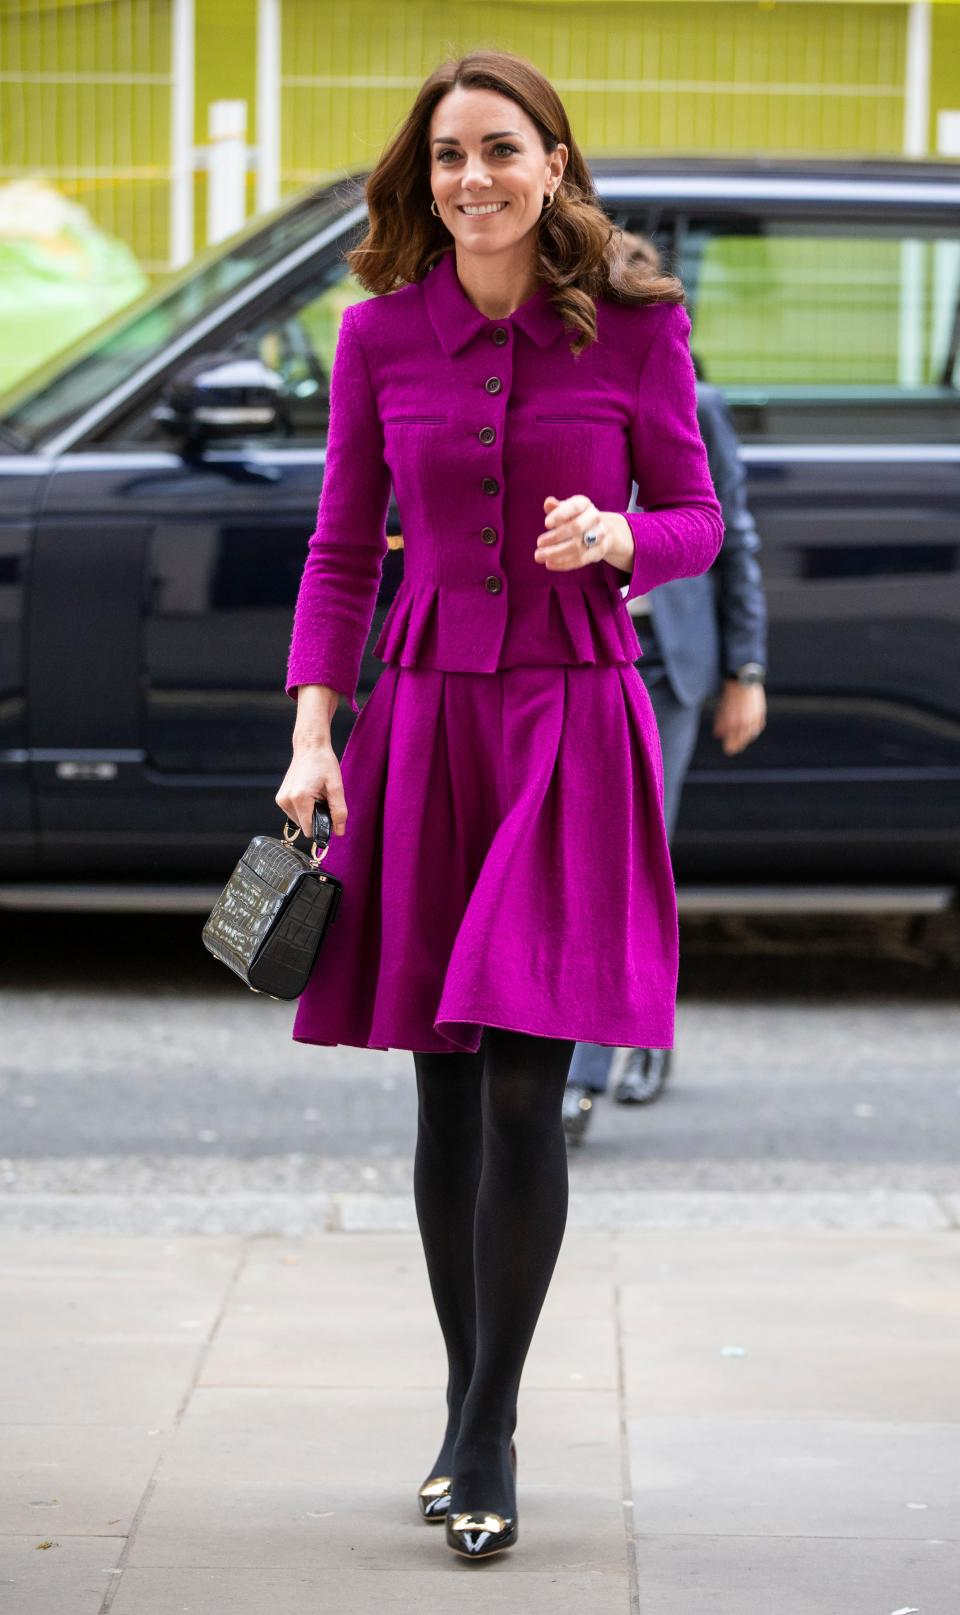 For a trip to the Royal Opera House, the Duchess of Cambridge recylced a £2,700 Oscar de la Renta skirt suit which she was first photographed wearing back in February 2017. To finish the high fashion ensemble, the 37-year-old wore £525 Rupert Sanderson block heels with winter-ready tights and a £495 Aspinal of London bag. [Photo: Getty]